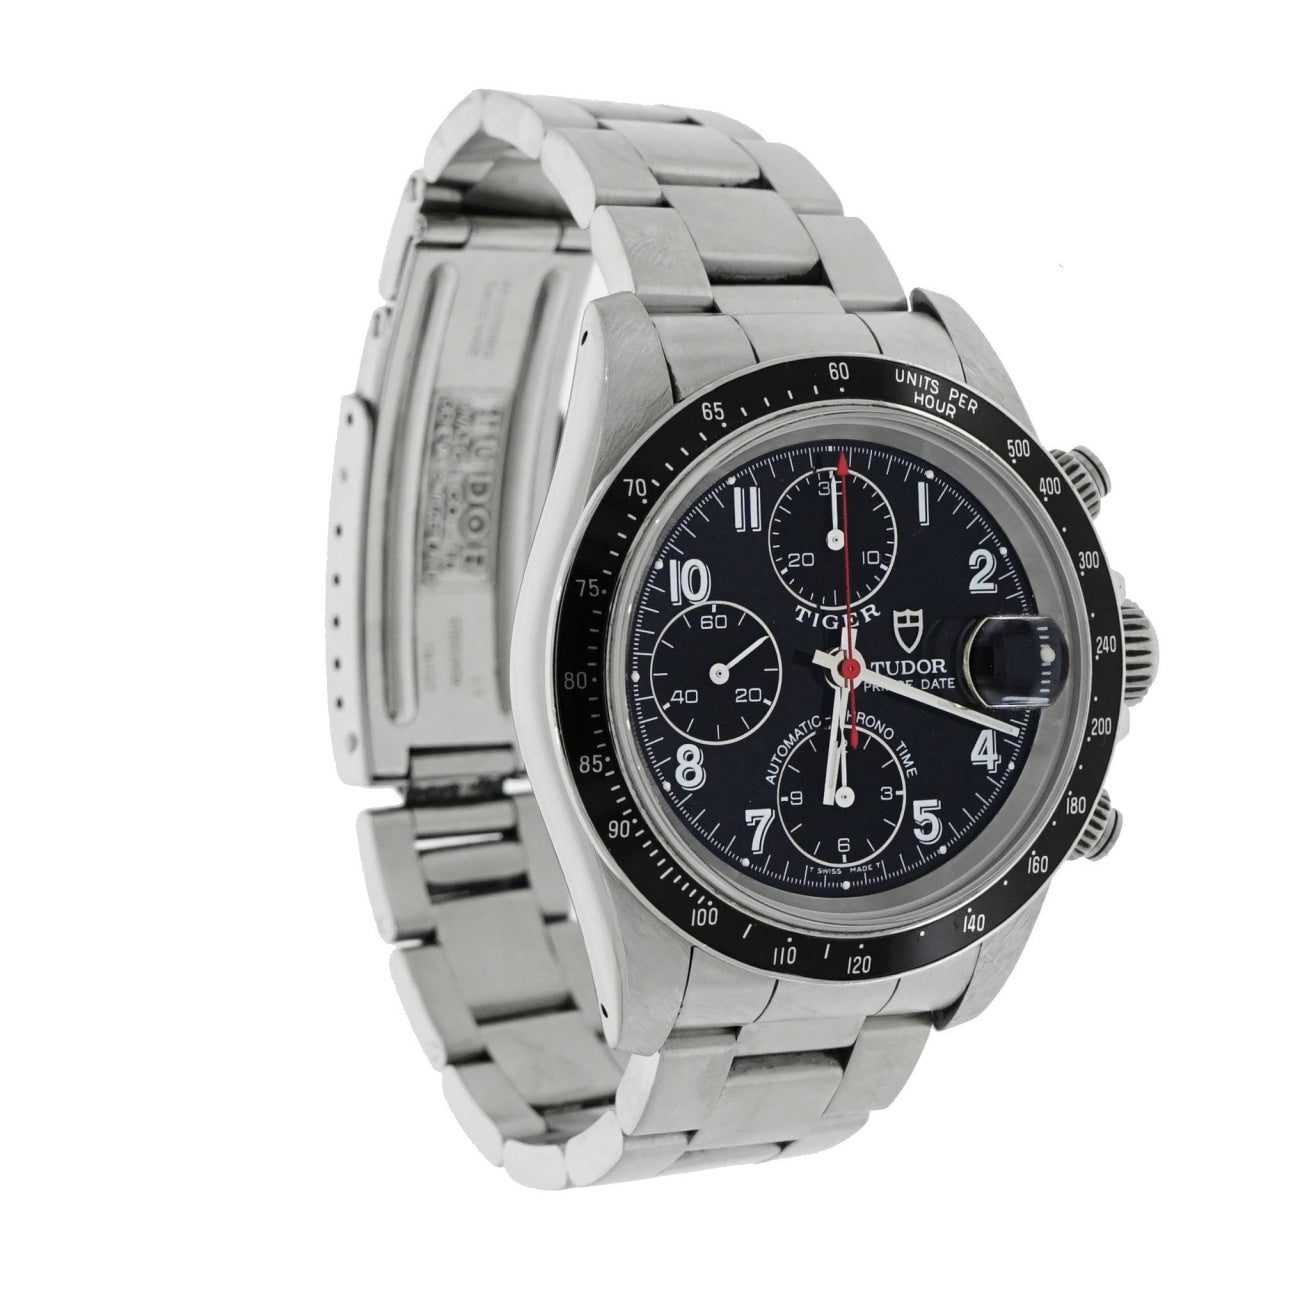 Pre-Owned Breitling Watches - Tudor Prince Date Chronograph 79280 in Stainless Steel | Manfredi Jewels